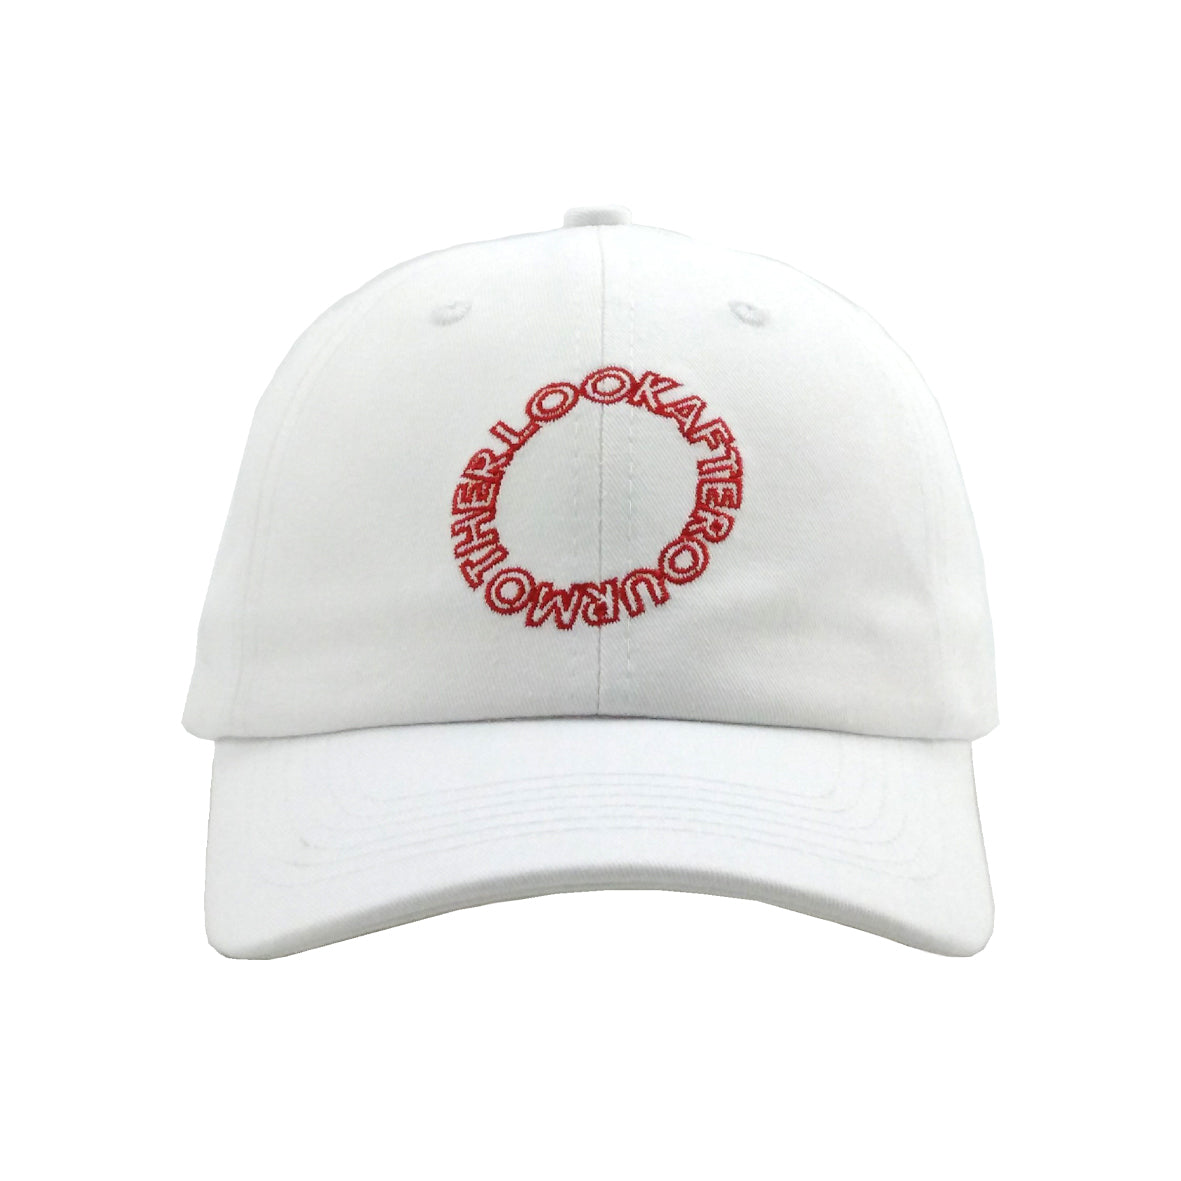 WOW 2019 CAP / WHITE